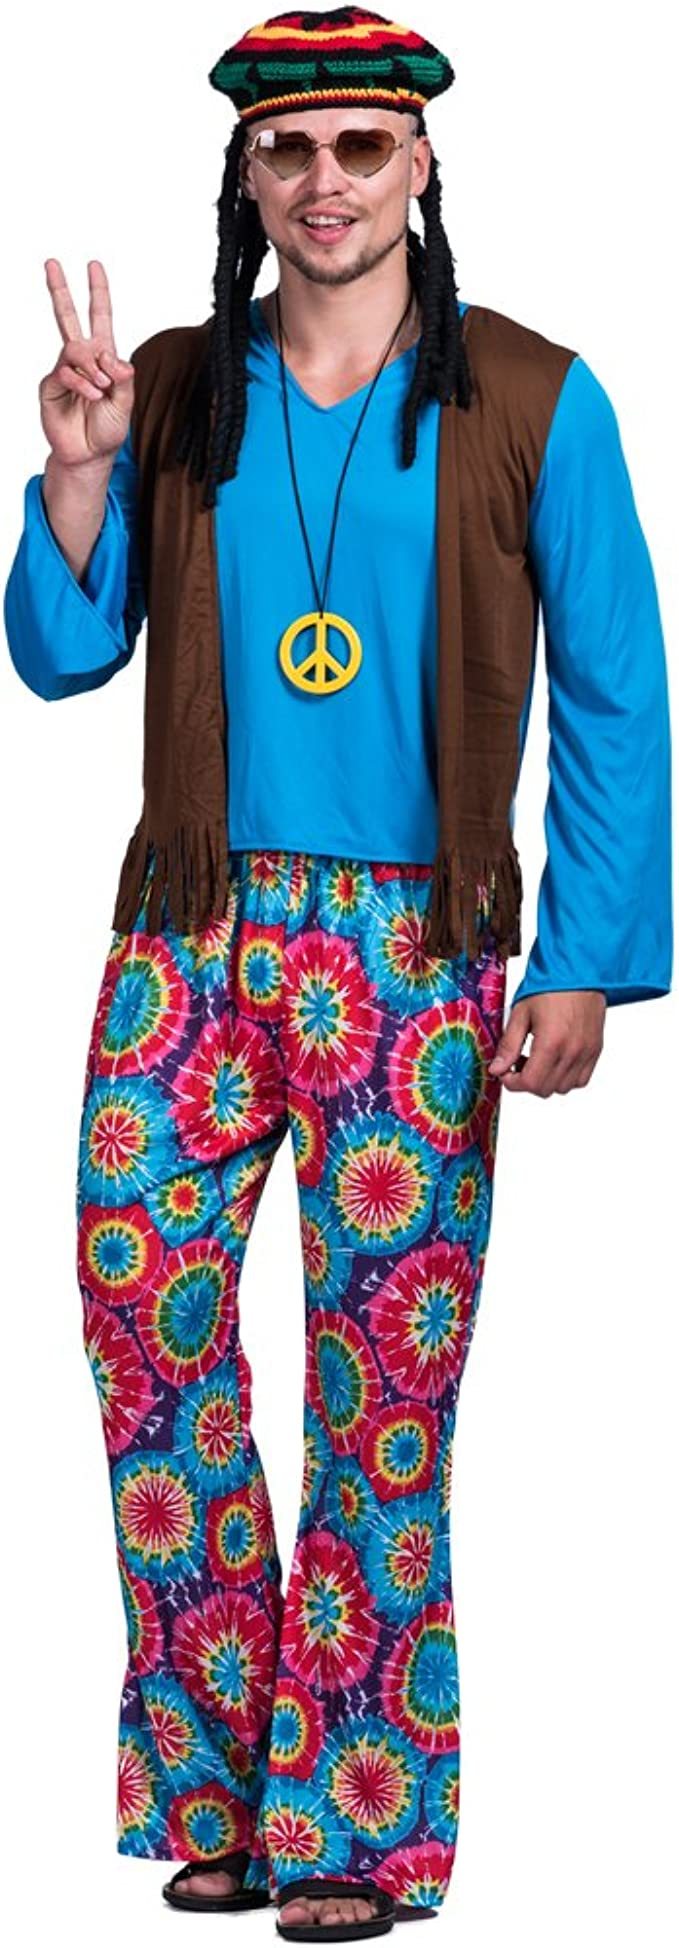 70s Costumes: Disco Costumes, Hippie Outfits EraSpooky Mens Adult Hippie Love Peace Costume $22.27 AT vintagedancer.com